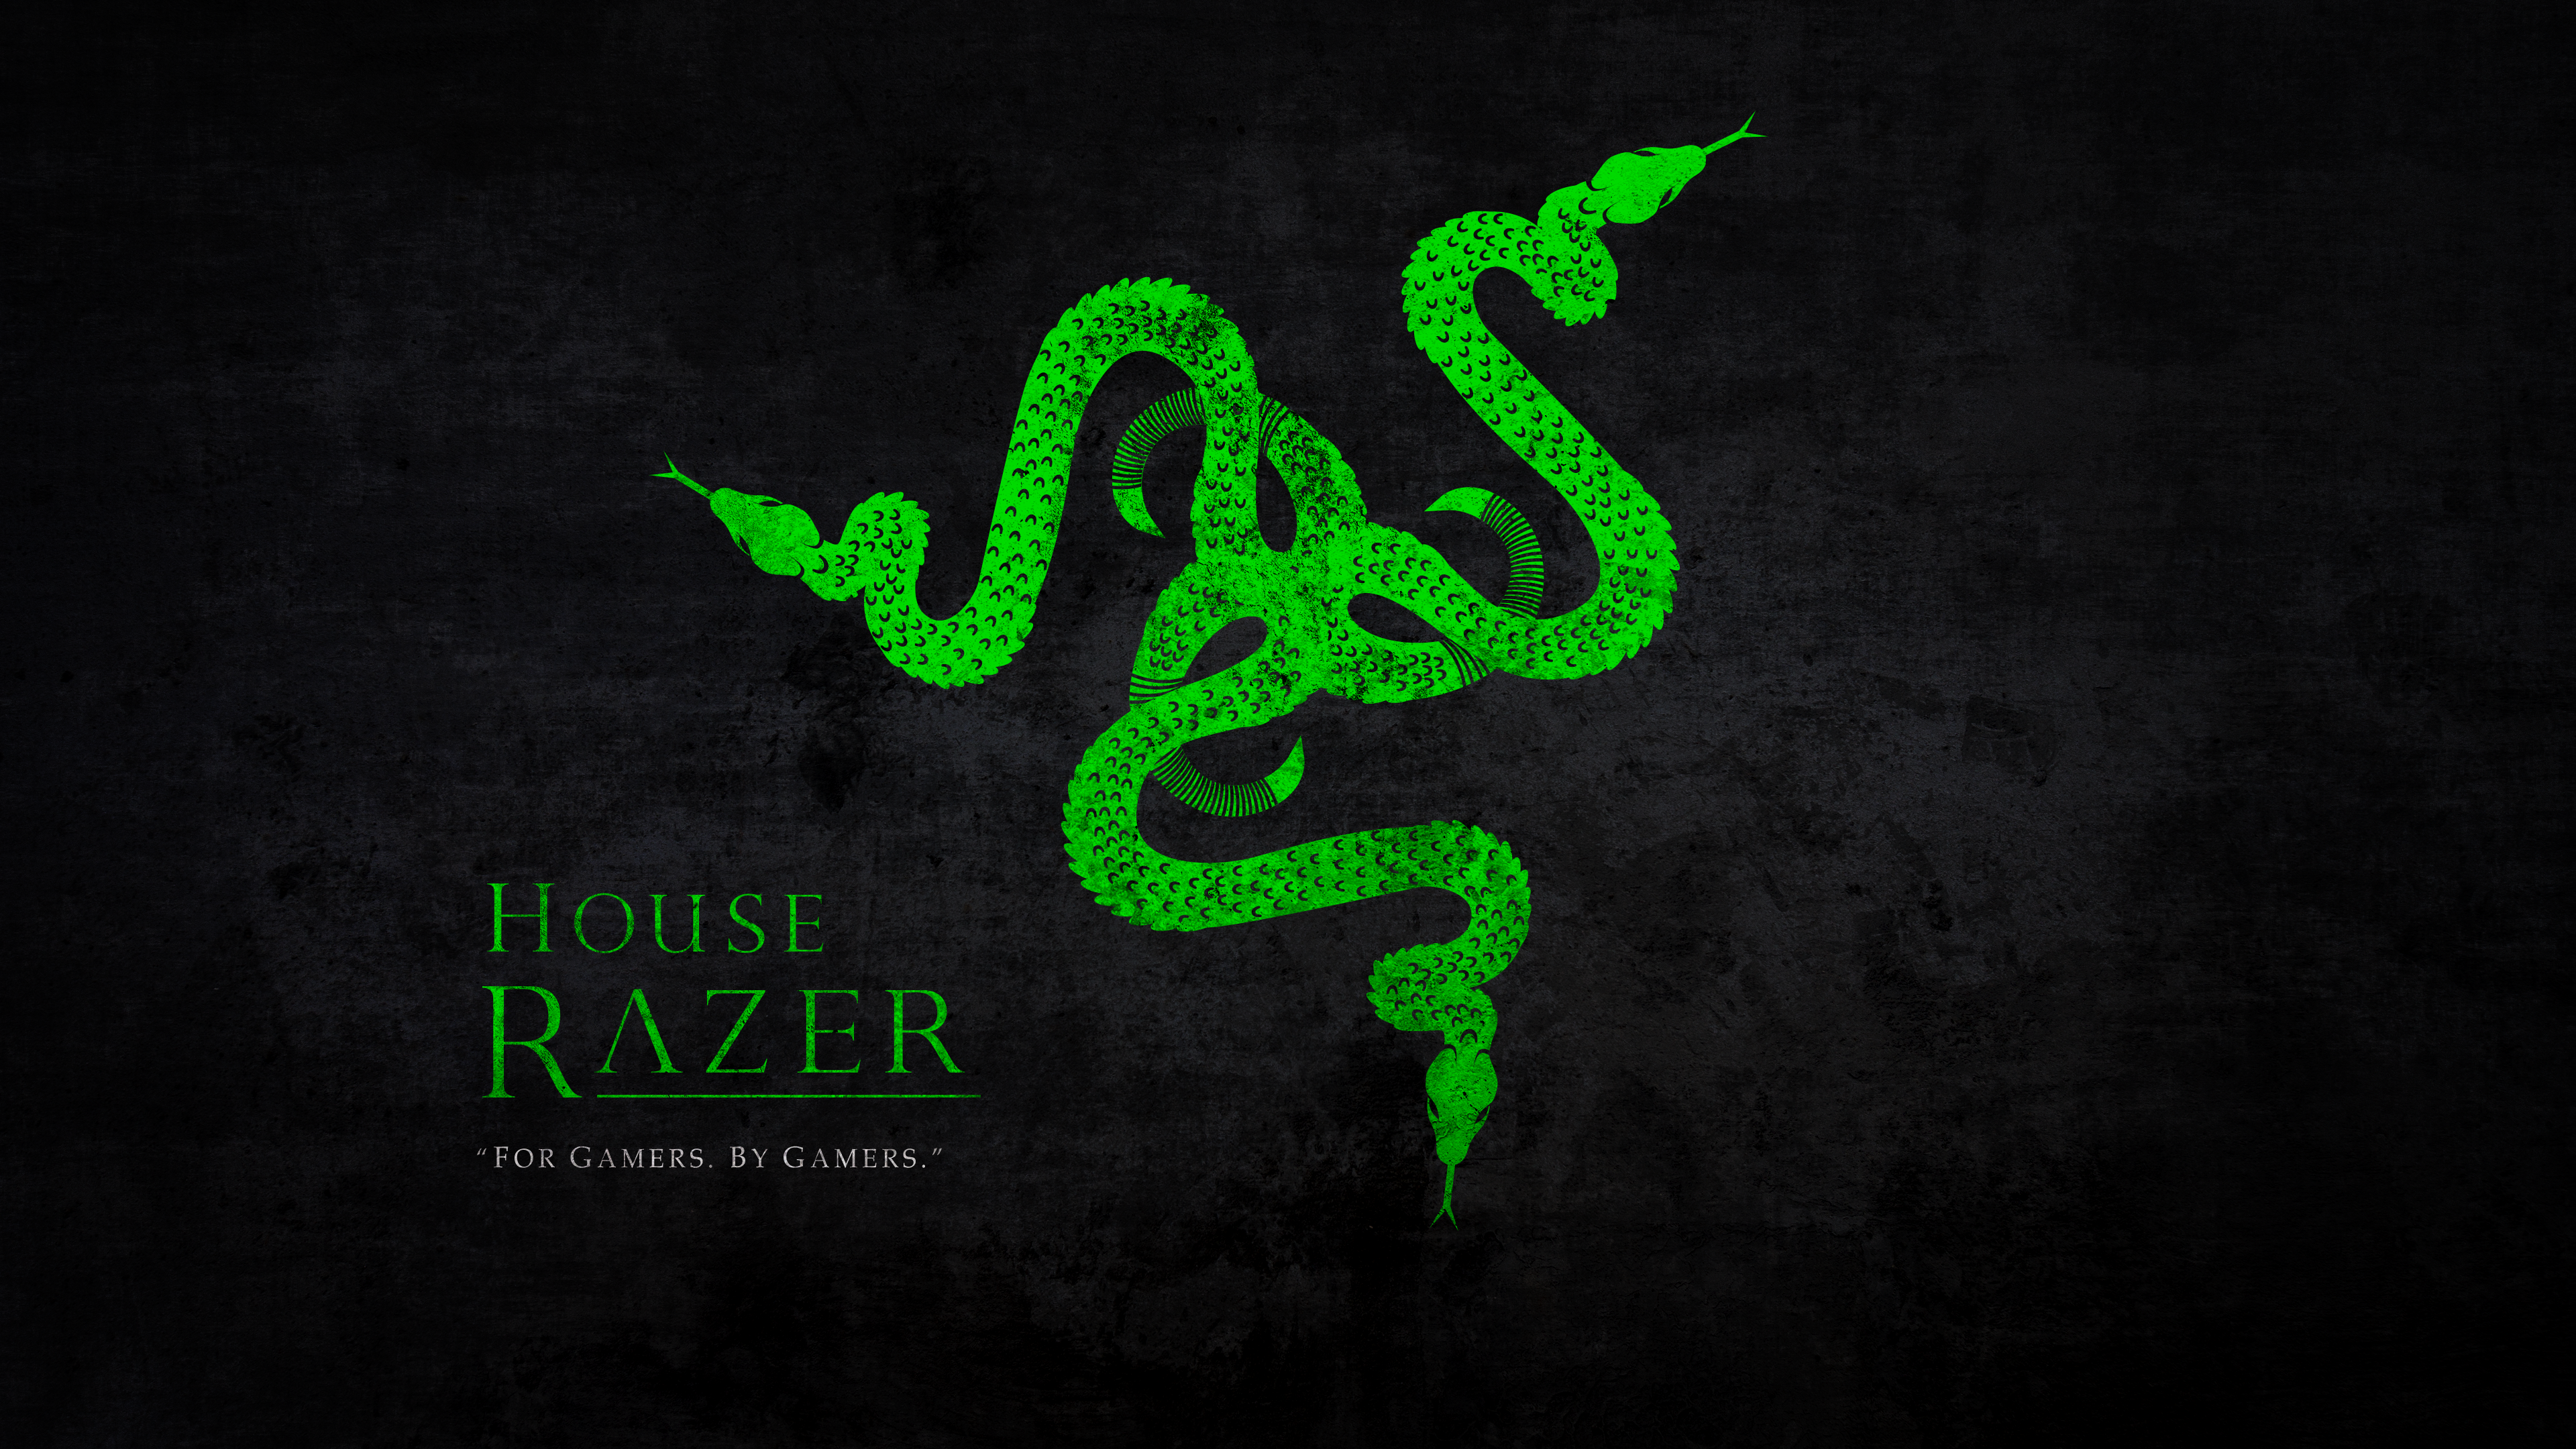 Razer 4k Ultra Hd Wallpaper Background Image 3840x2160 Id 904943 Wallpaper Abyss